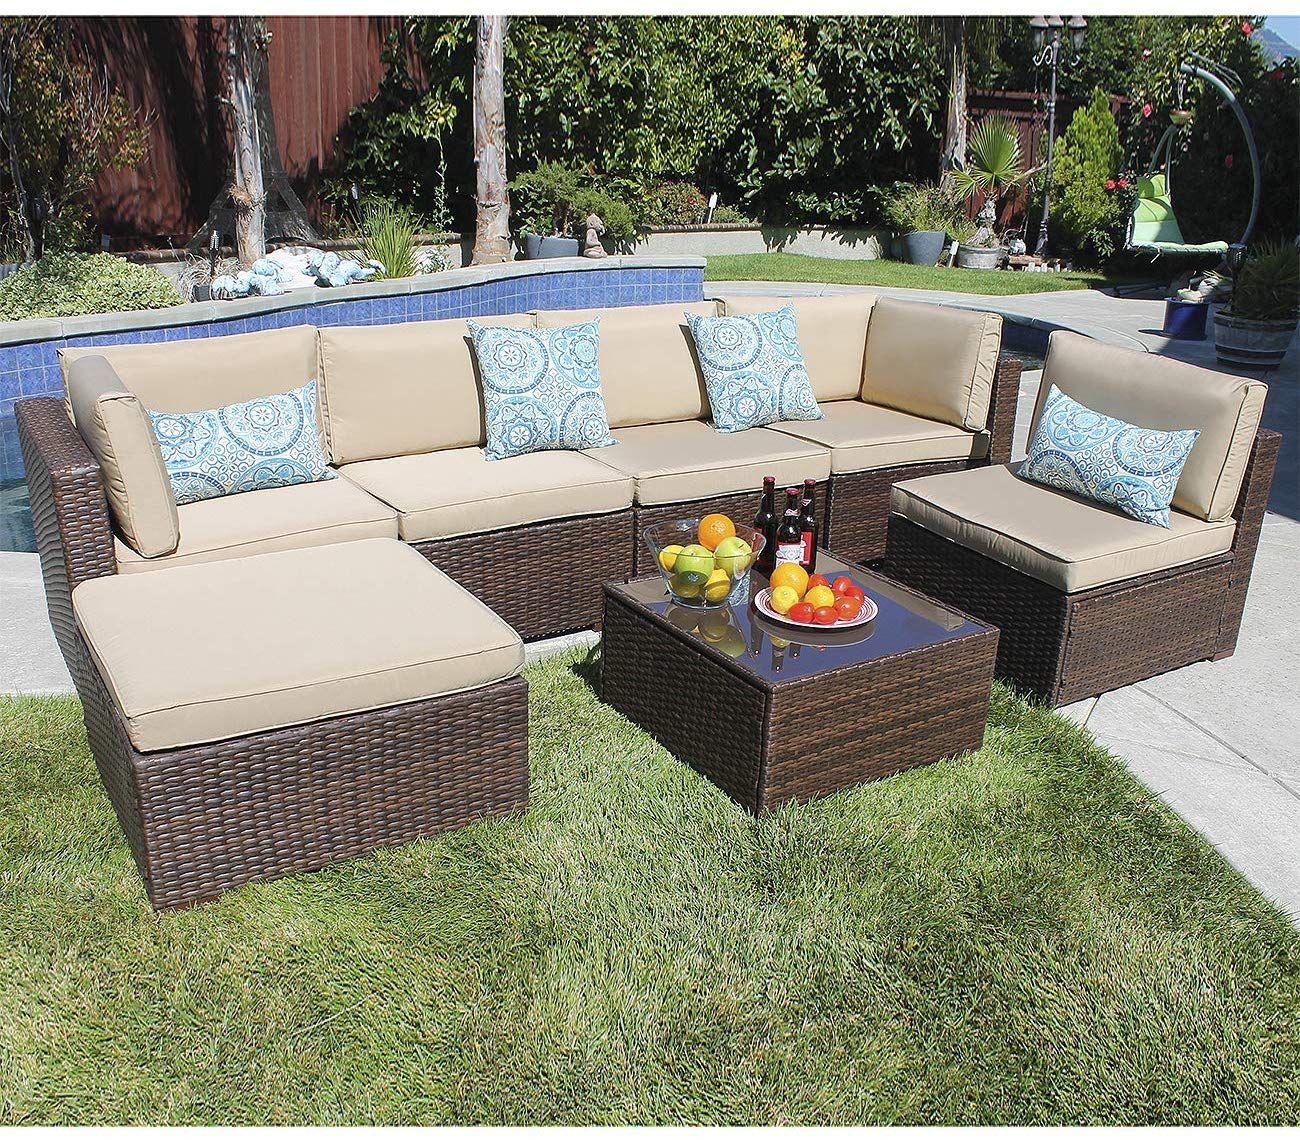 Joivi 7 Piece Patio Furniture Set Outdoor Furniture Set Pe Rattan Wicker Sectional With Beige C Outdoor Furniture Sets Outdoor Furniture Patio Furniture Sets